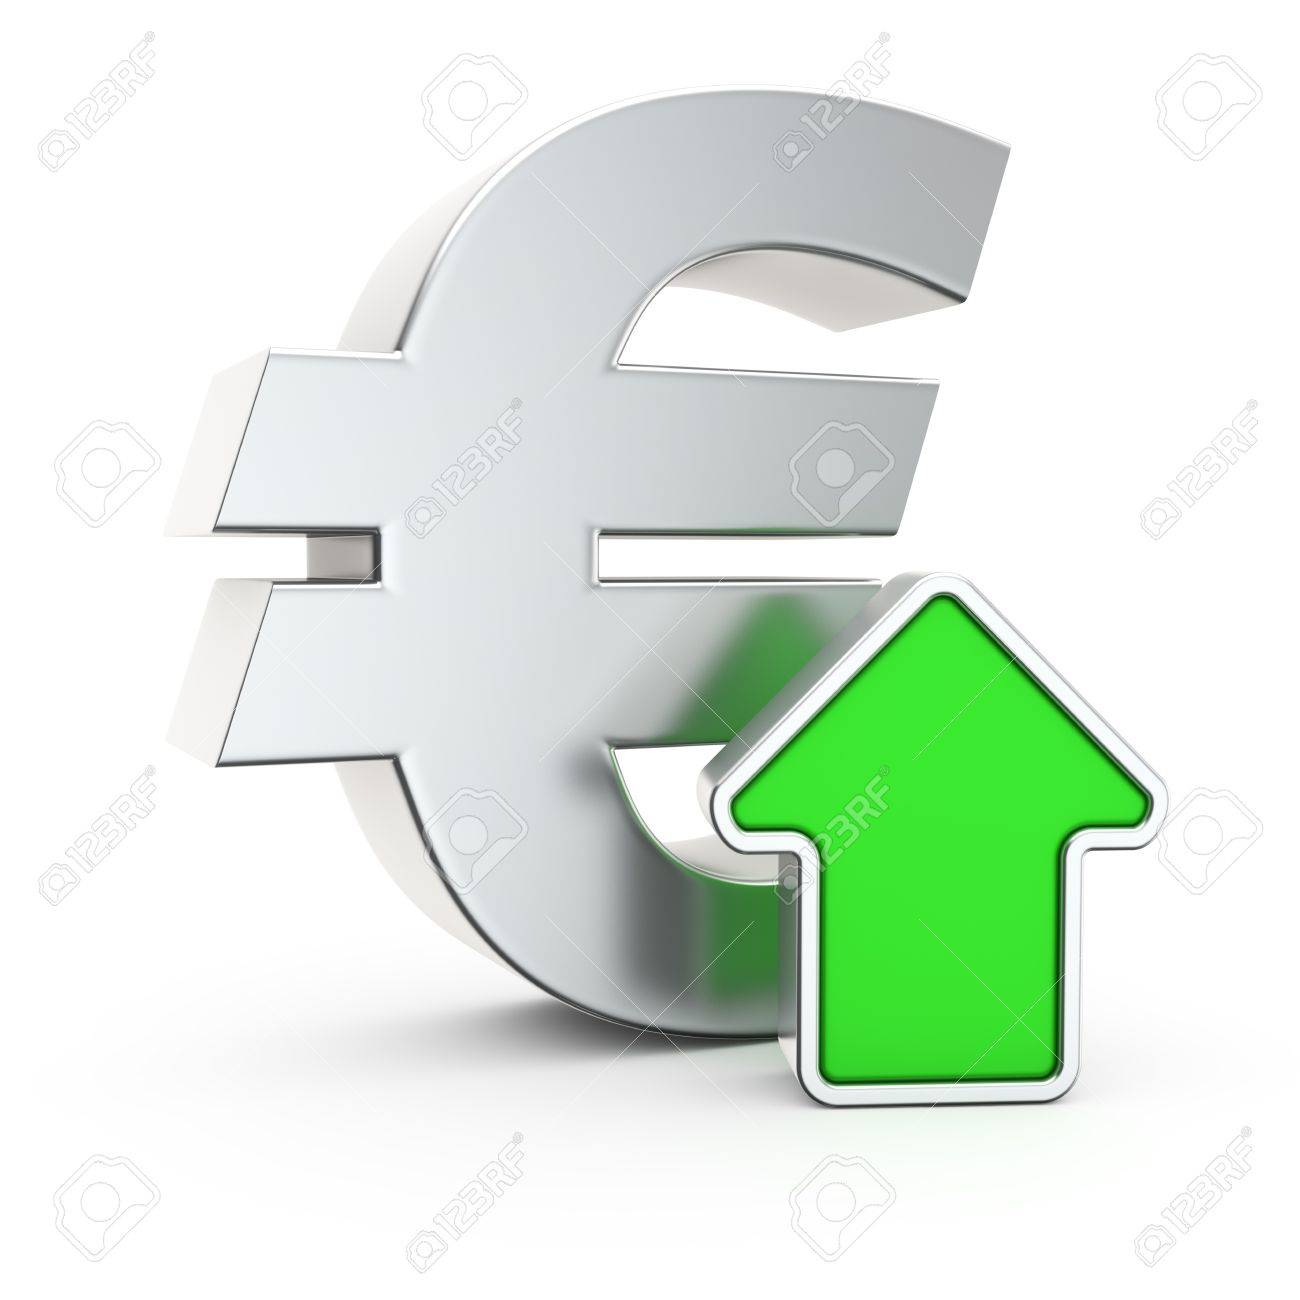 Euro currency symbol and icon of appreciation stock photo picture euro currency symbol and icon of appreciation stock photo 20047141 buycottarizona Choice Image